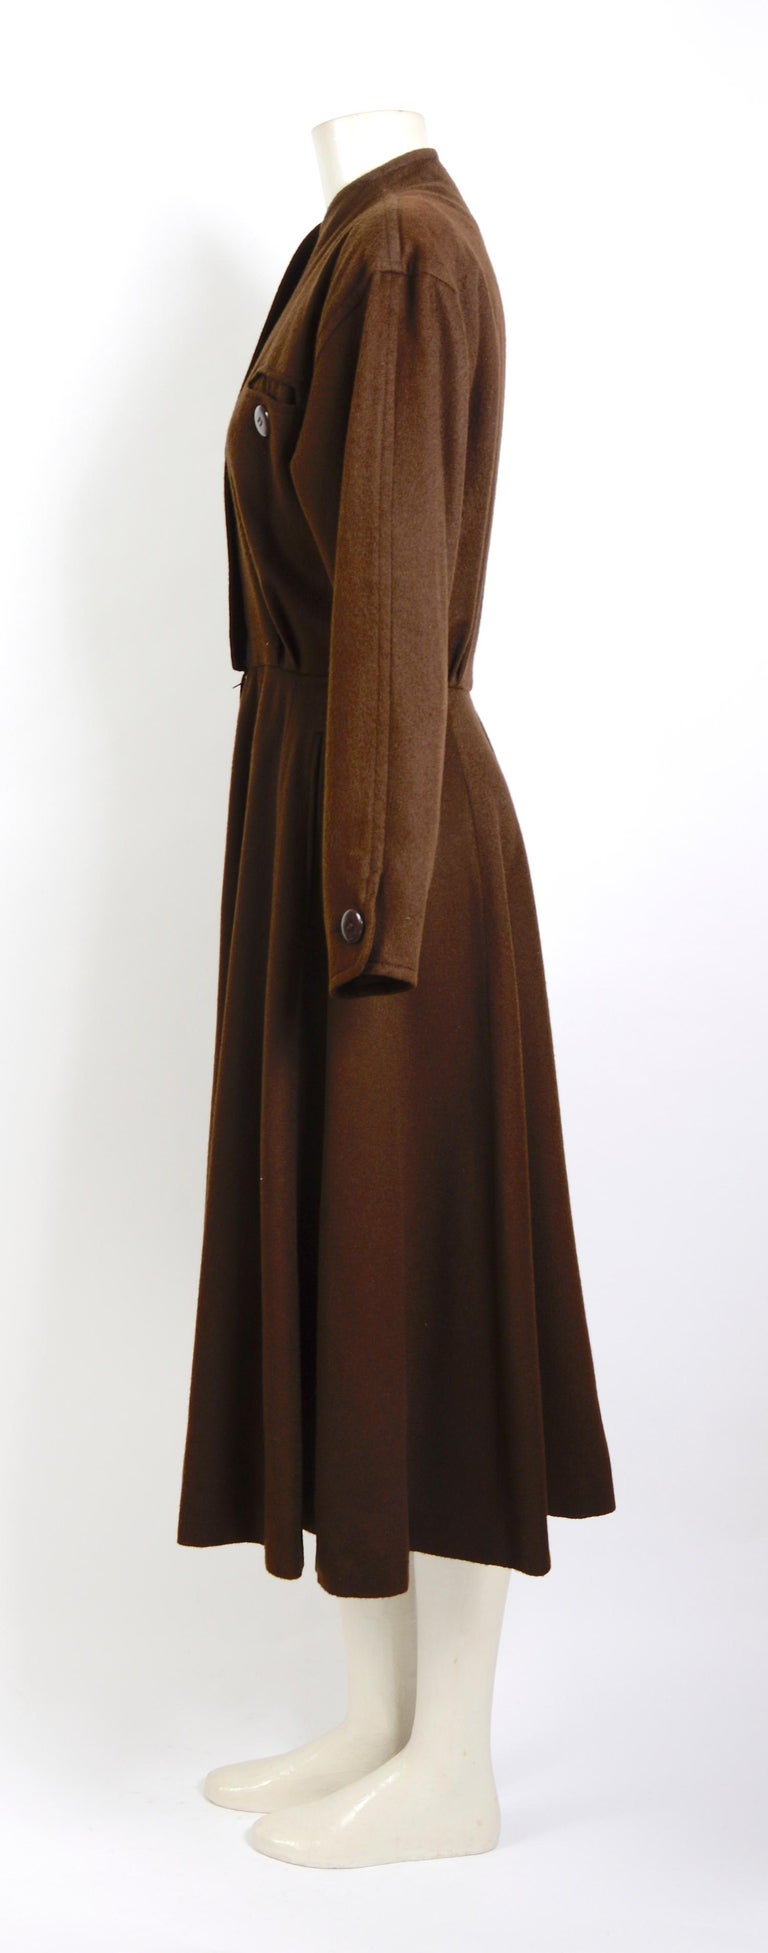 Yves Saint Laurent vintage 1970s brown wool winter dress In Good Condition For Sale In Antwerp, BE